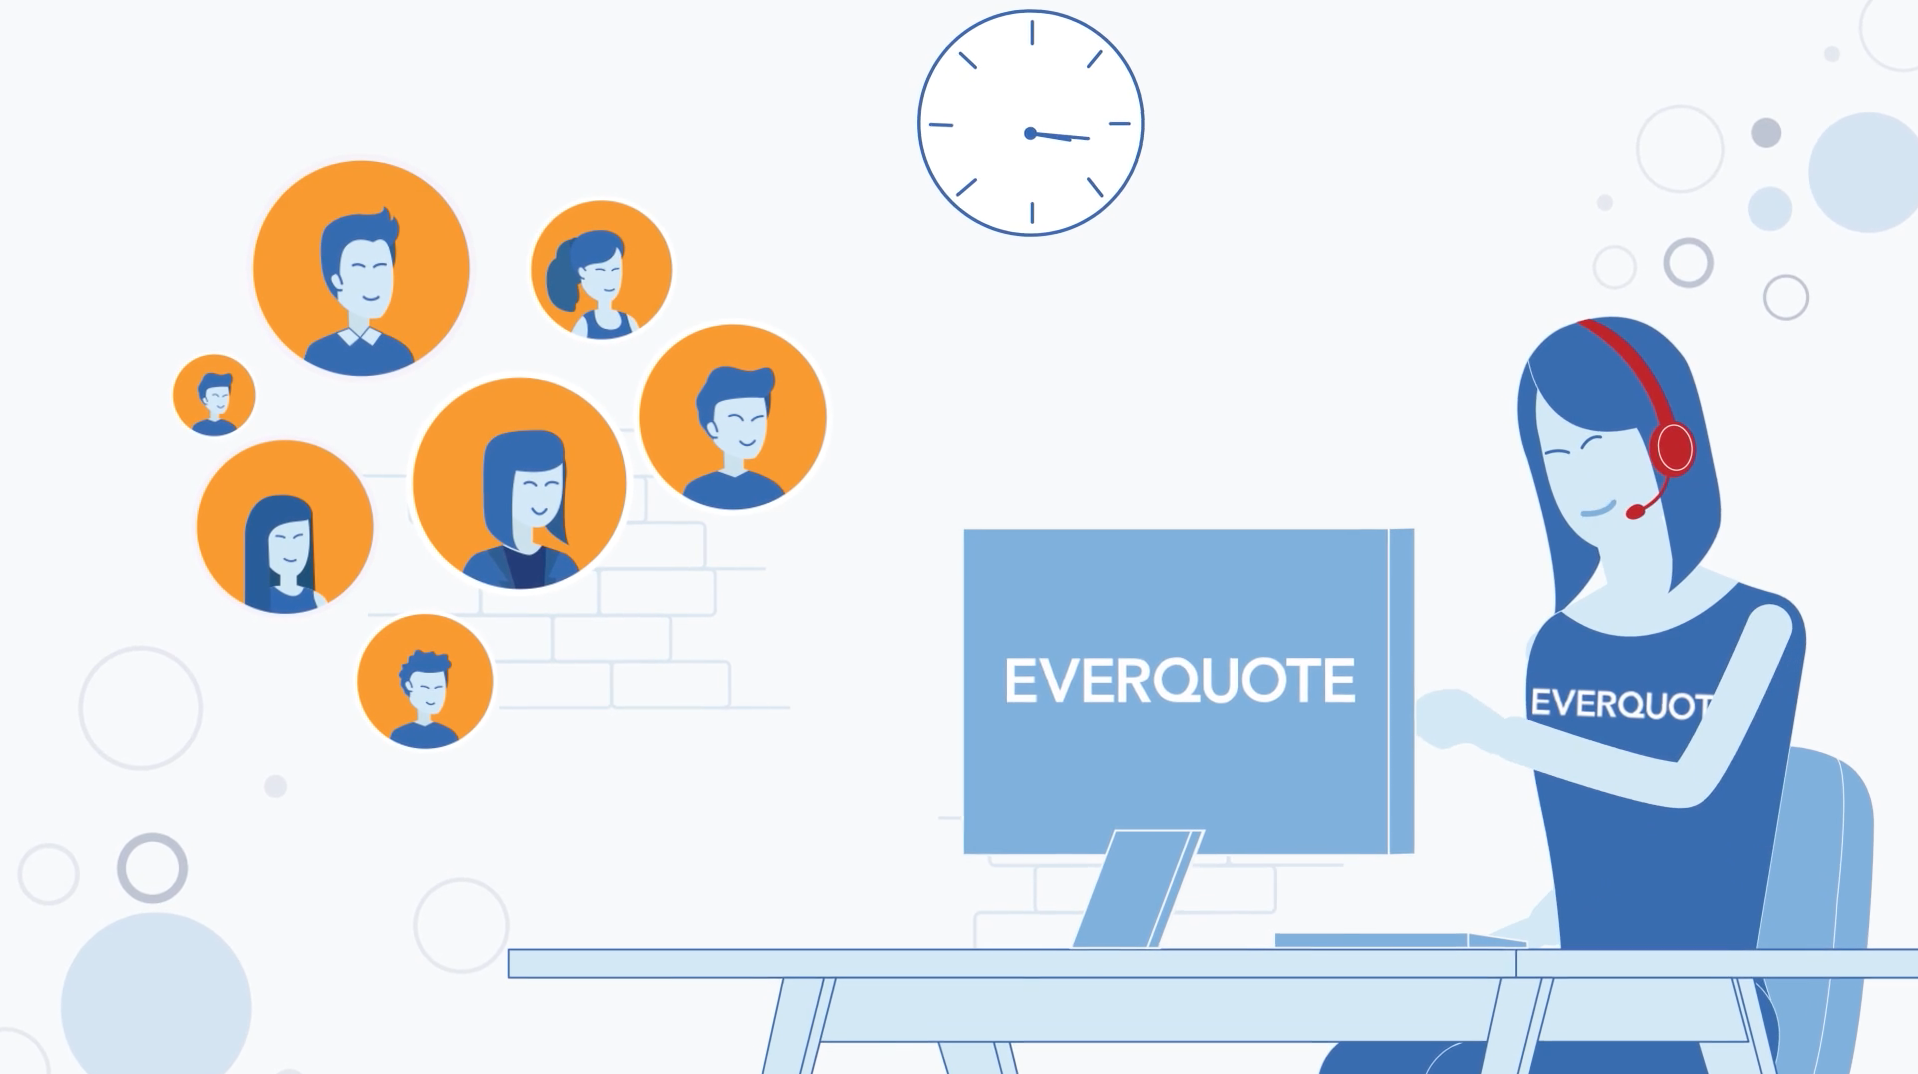 EverQuote's Lead Connection Service (LCS): Getting Started